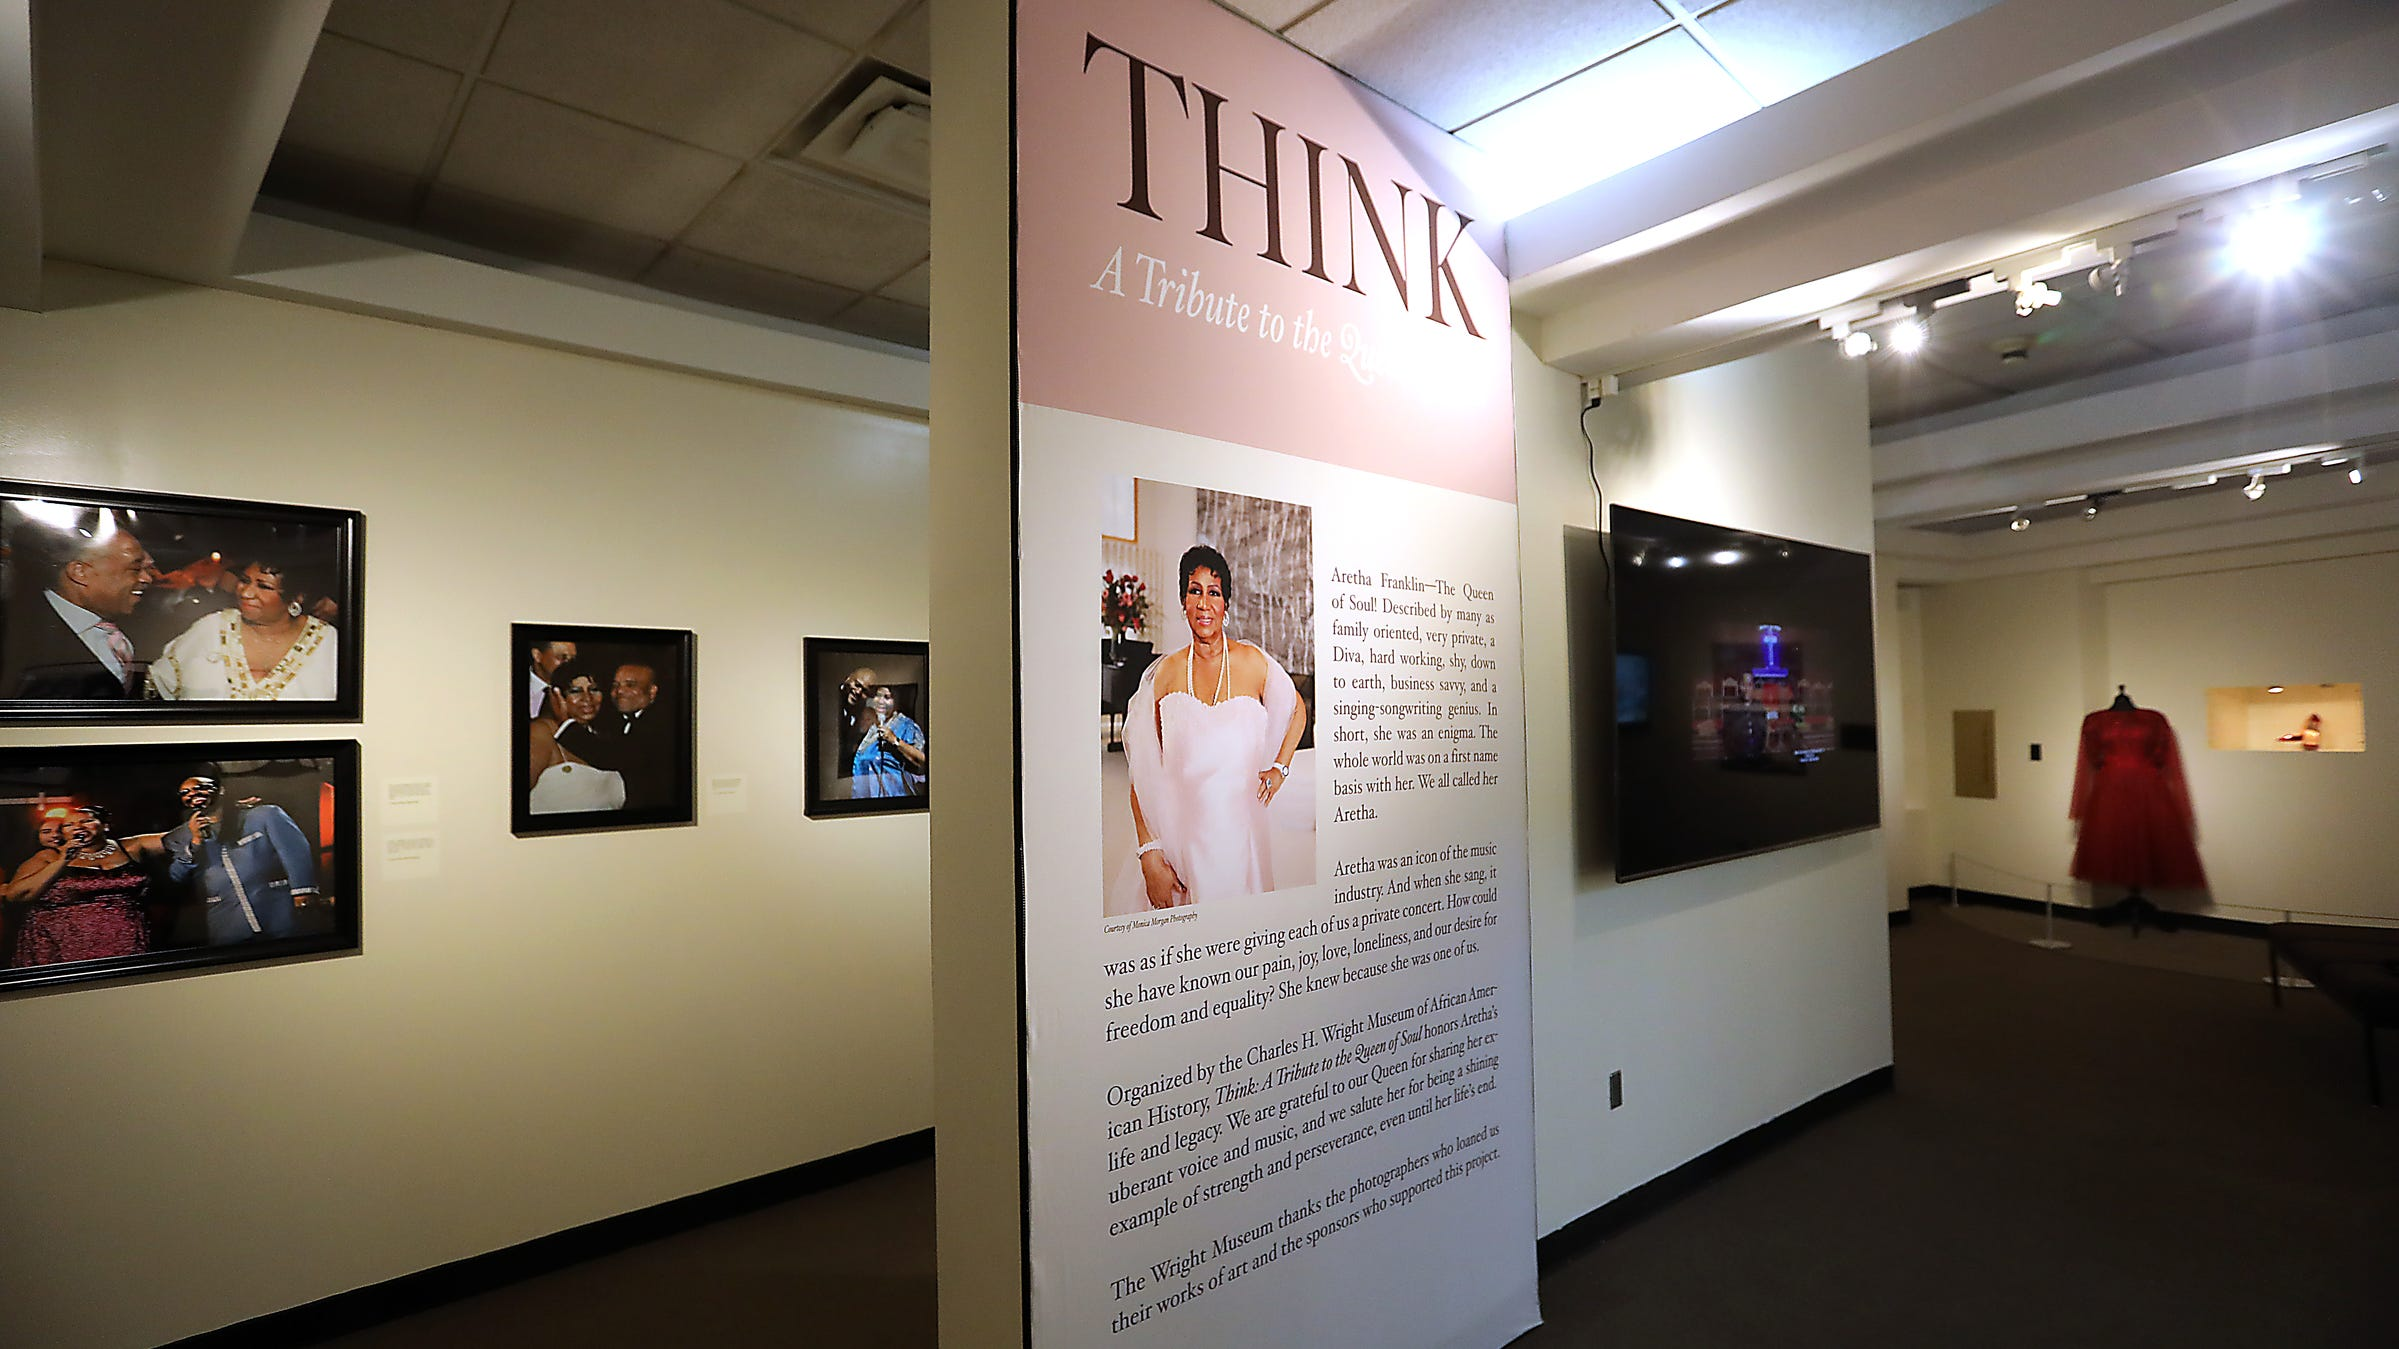 """A new exhibit about Aretha Franklin, """"Think: A Tribute to the Queen of Soul"""", is at the Charles H. Wright Museum of African American History in Detroit on Friday, Sept. 21, 2018."""